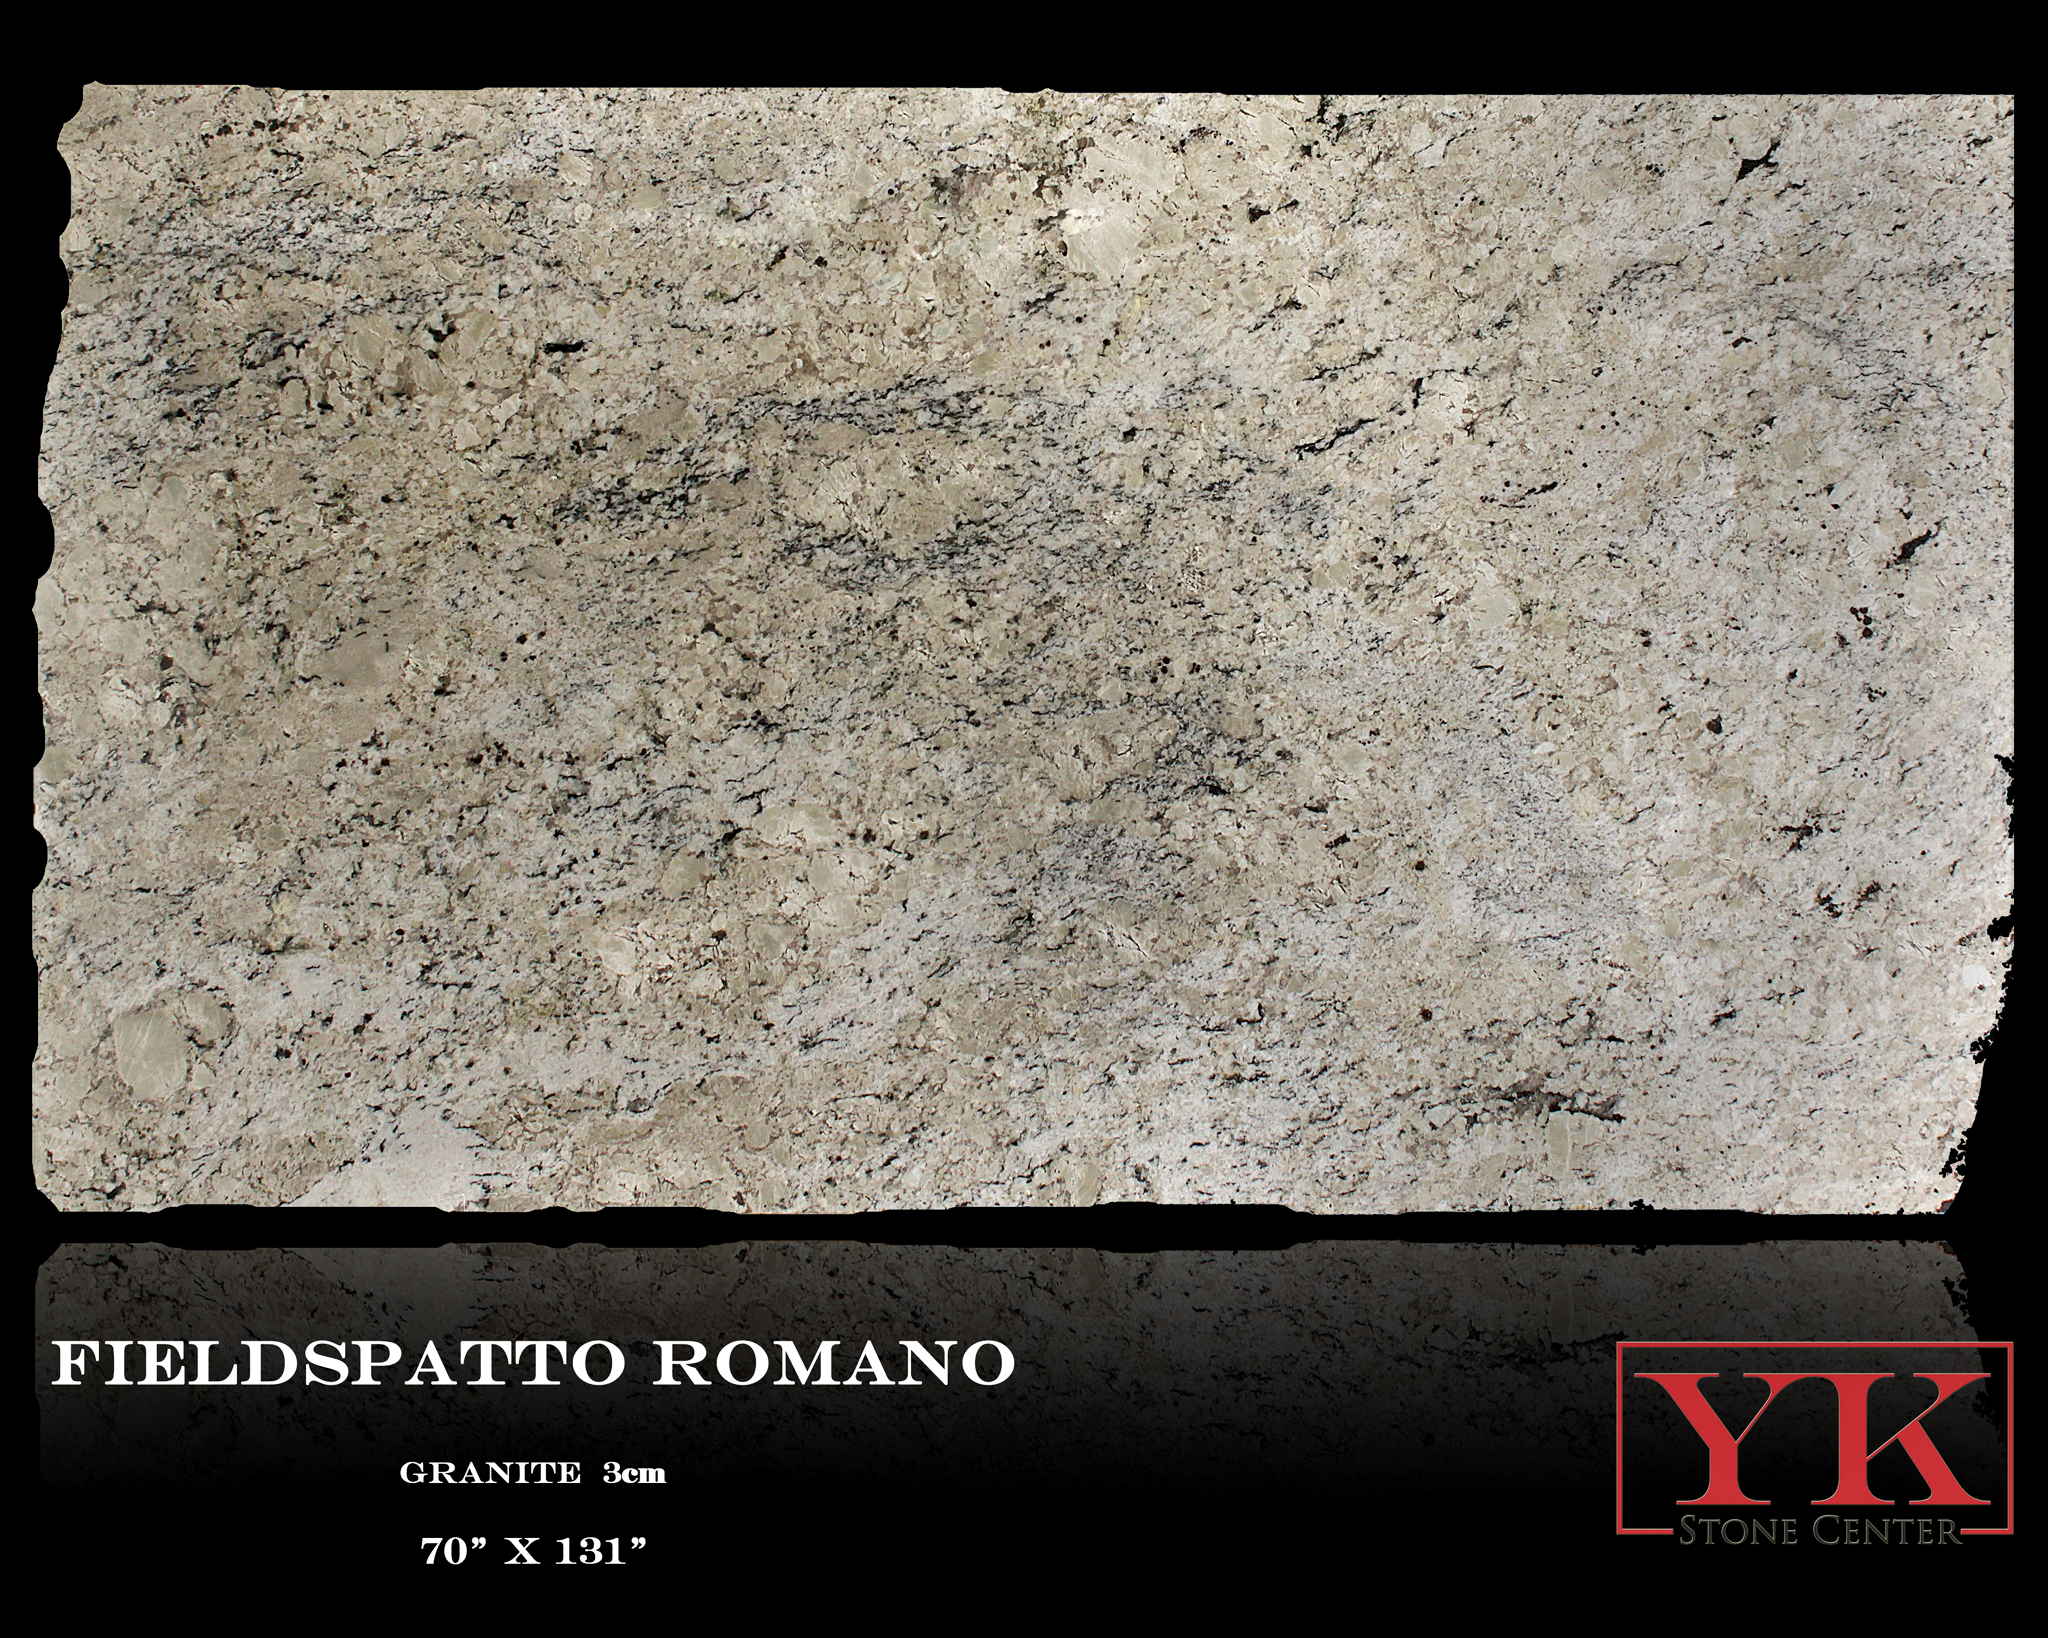 Fieldspatto Romano Granite in Denver